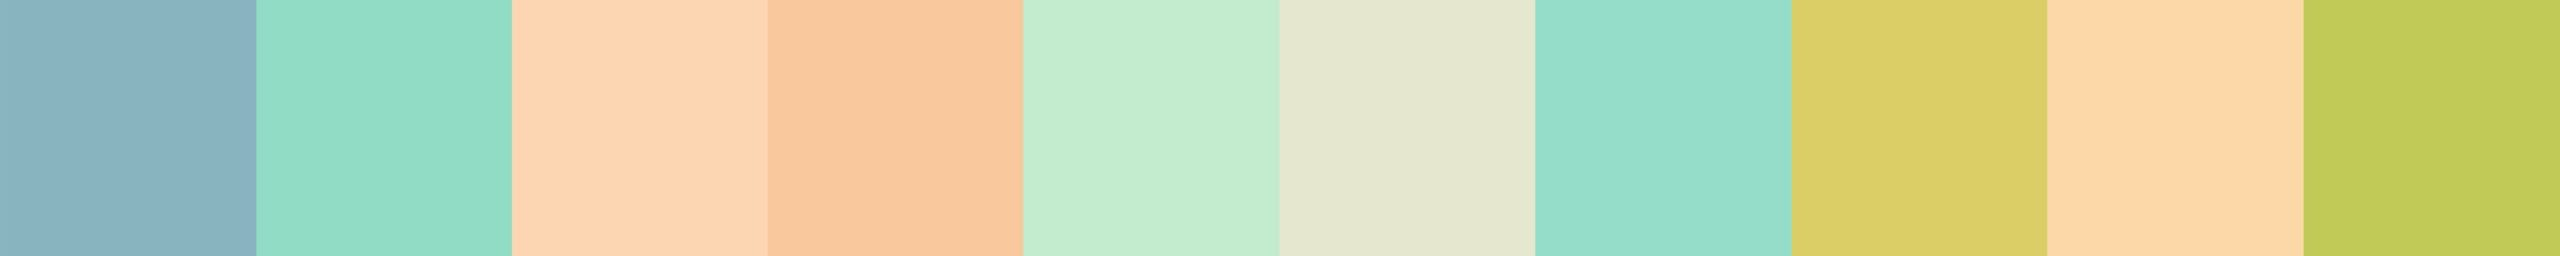 595 Esme Color Palette